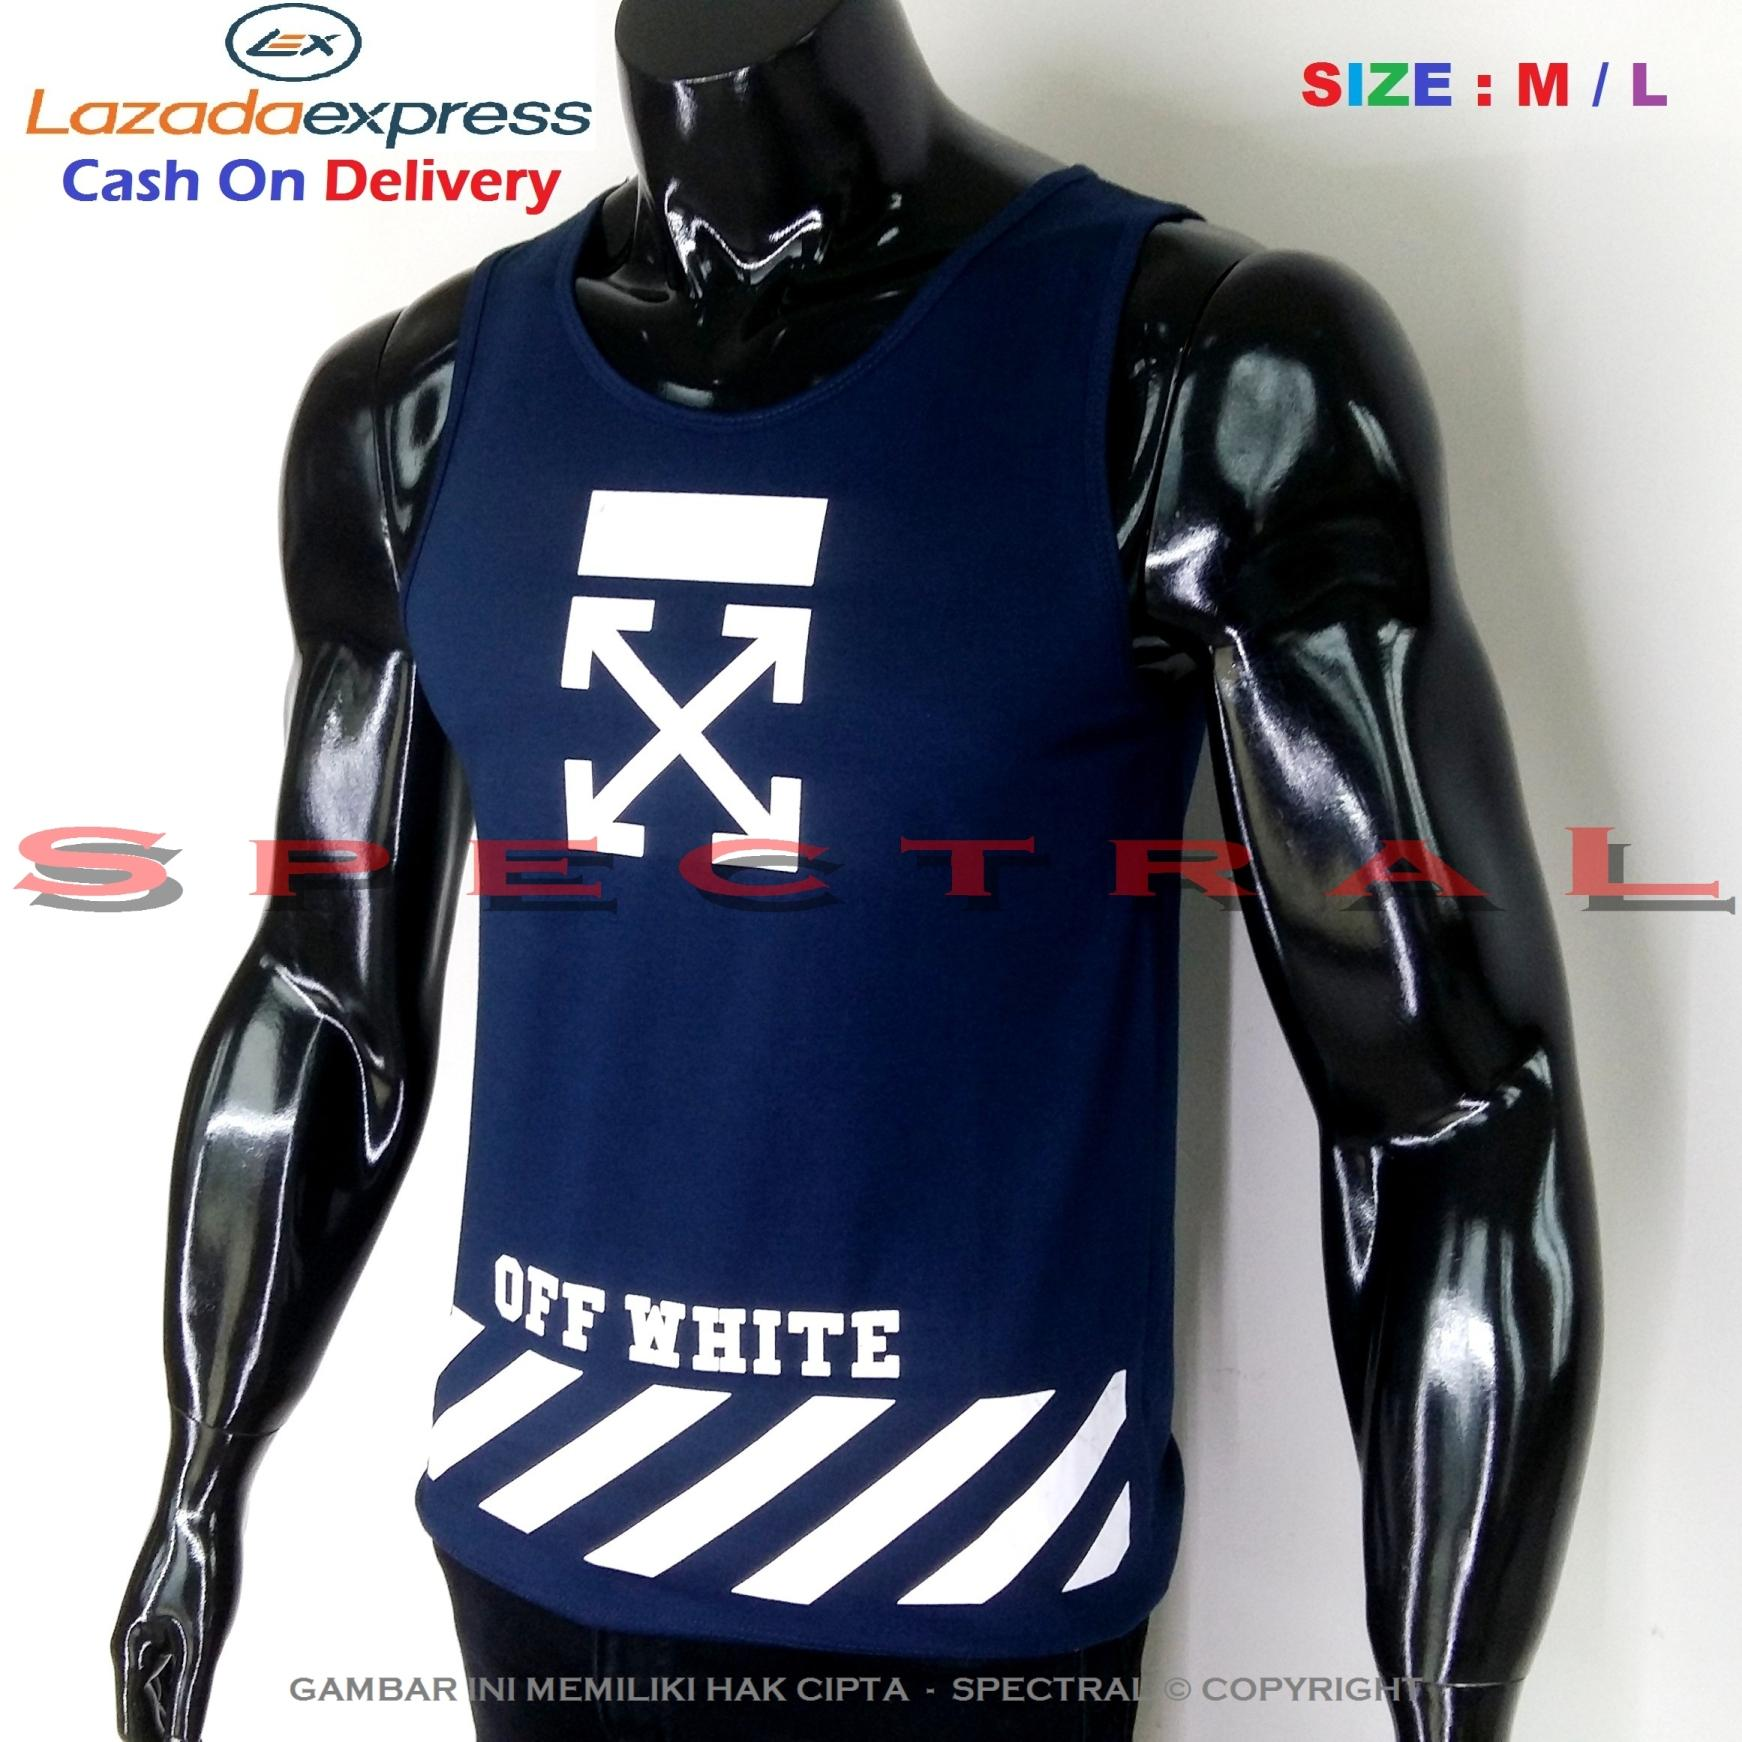 Spectral – Singlet X Off White M / L Soft Cotton Combed 30s Navy Dongker